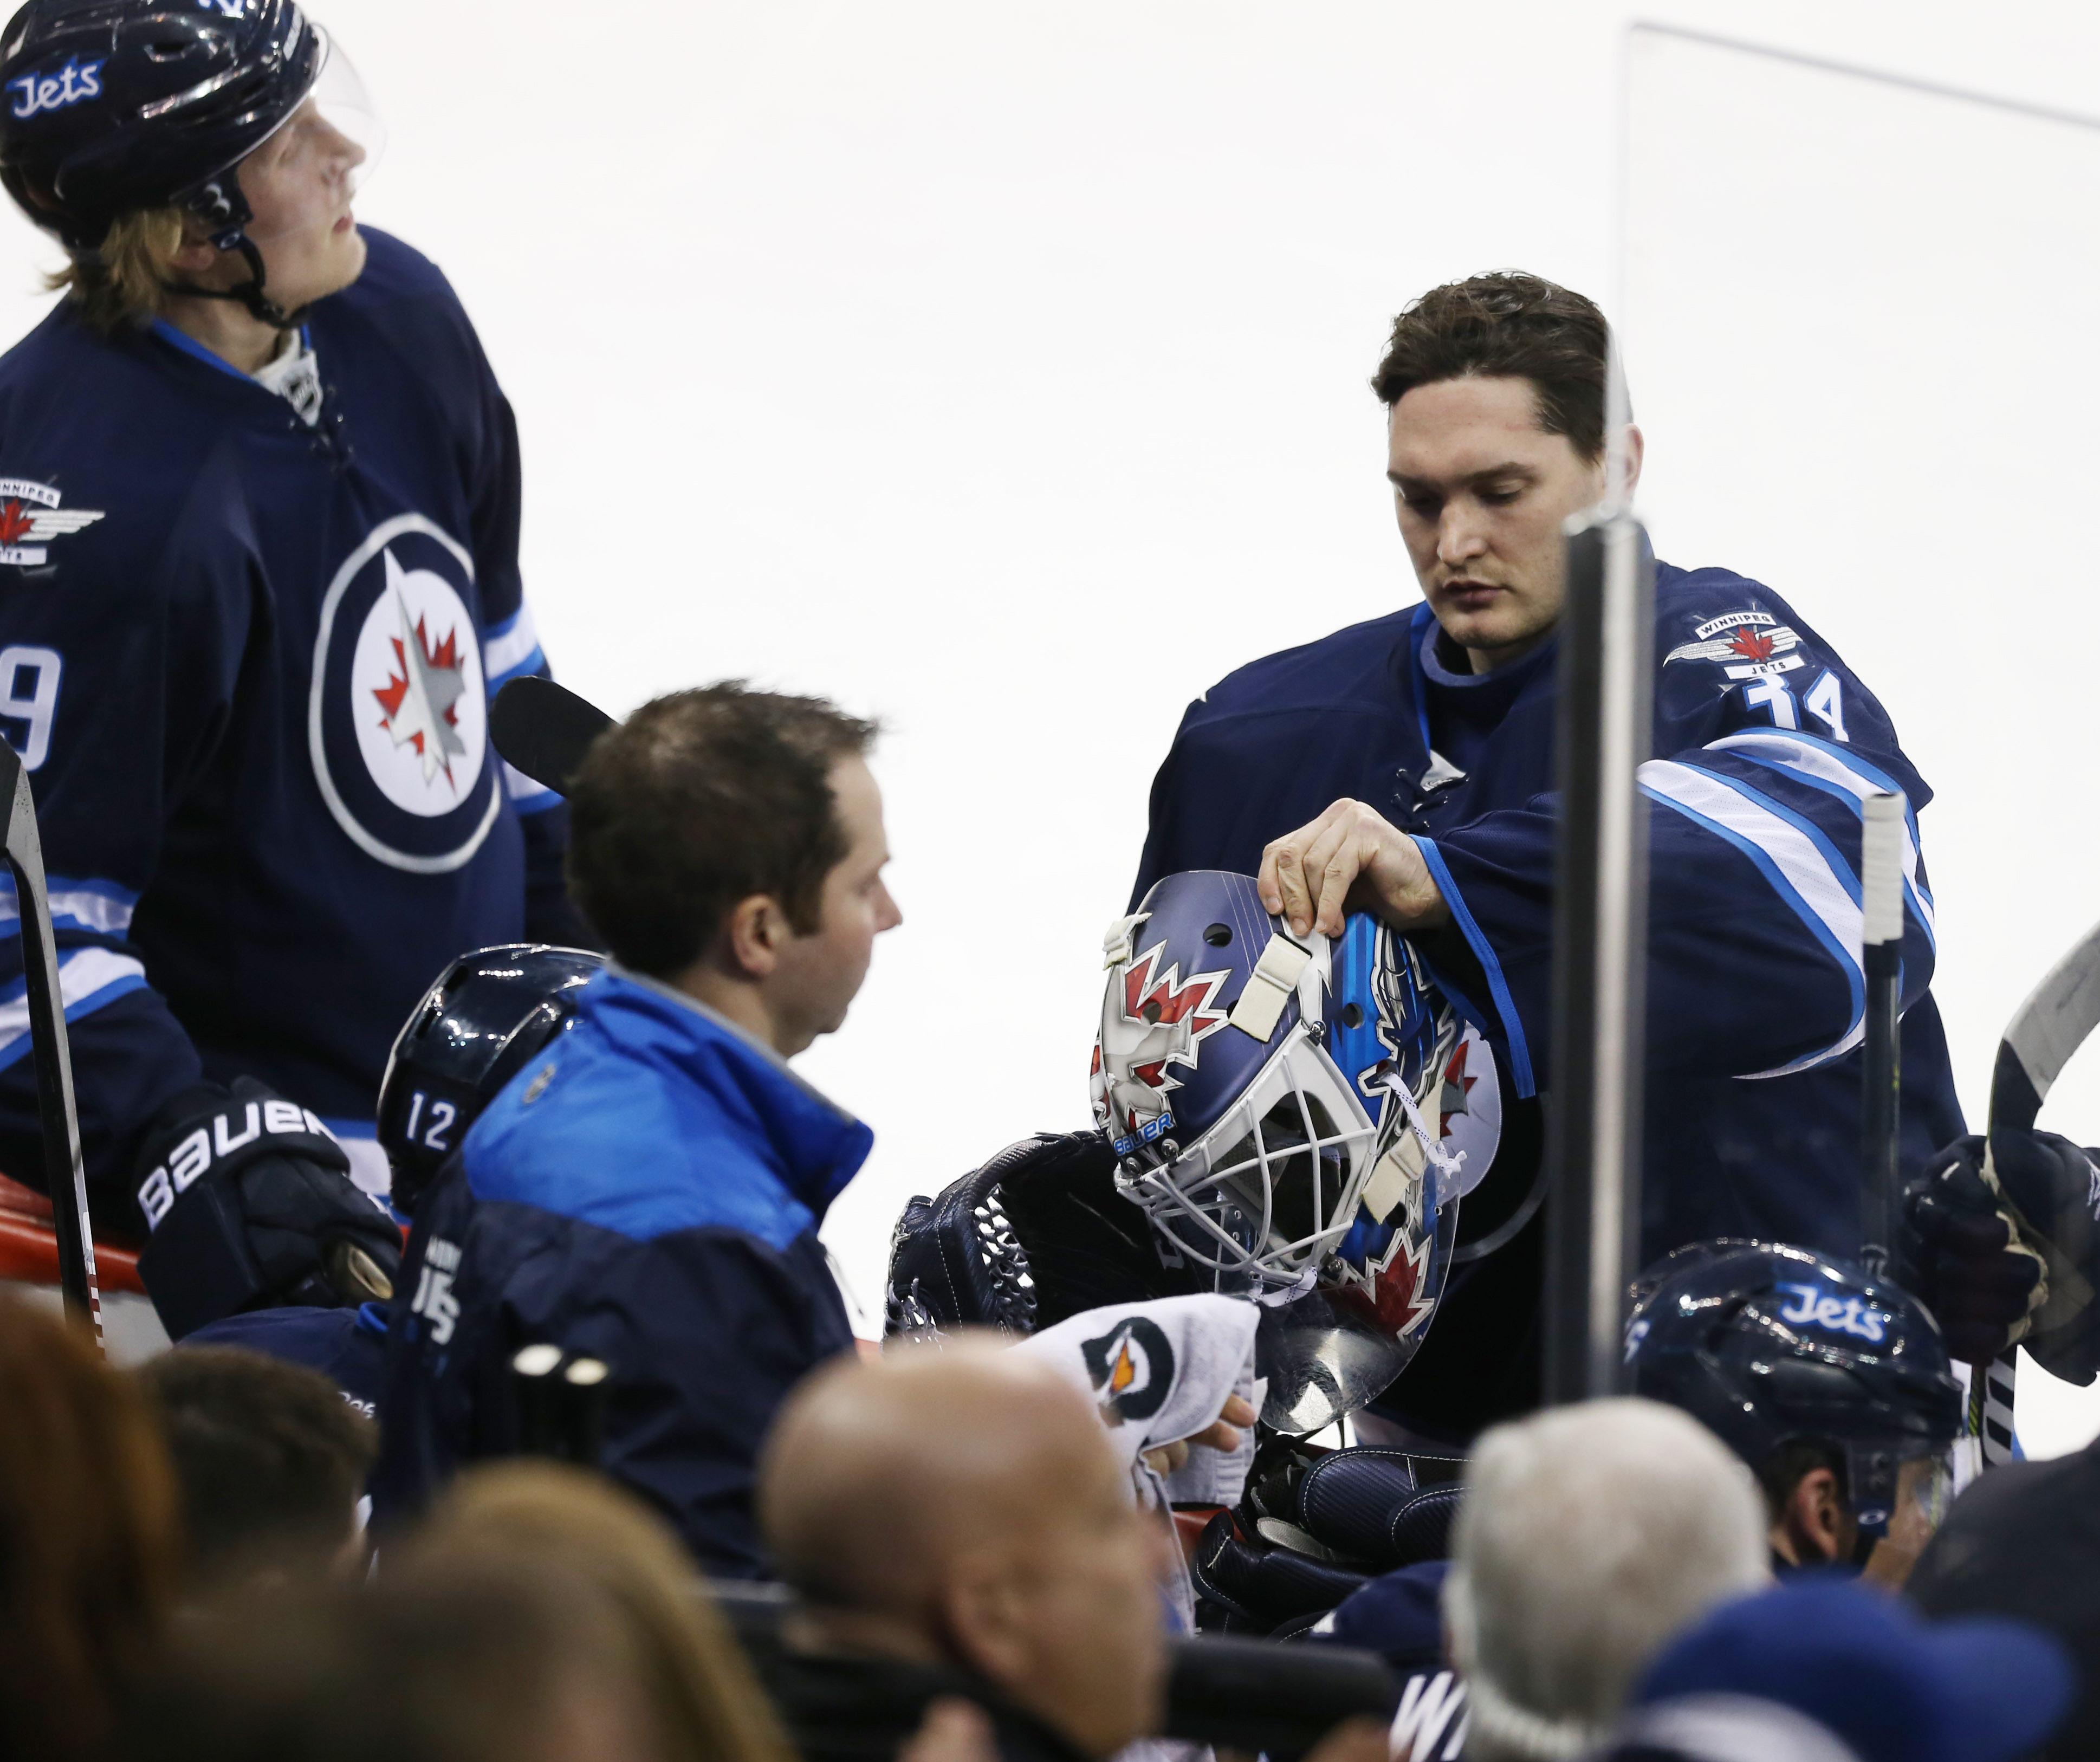 Winnipeg Jets goalie Michael Hutchinson (34) prepares to head to the net to replace Winnipeg Jets goalie Connor Hellebuyck (37) during the second period against the Minnesota Wild at MTS Centre.